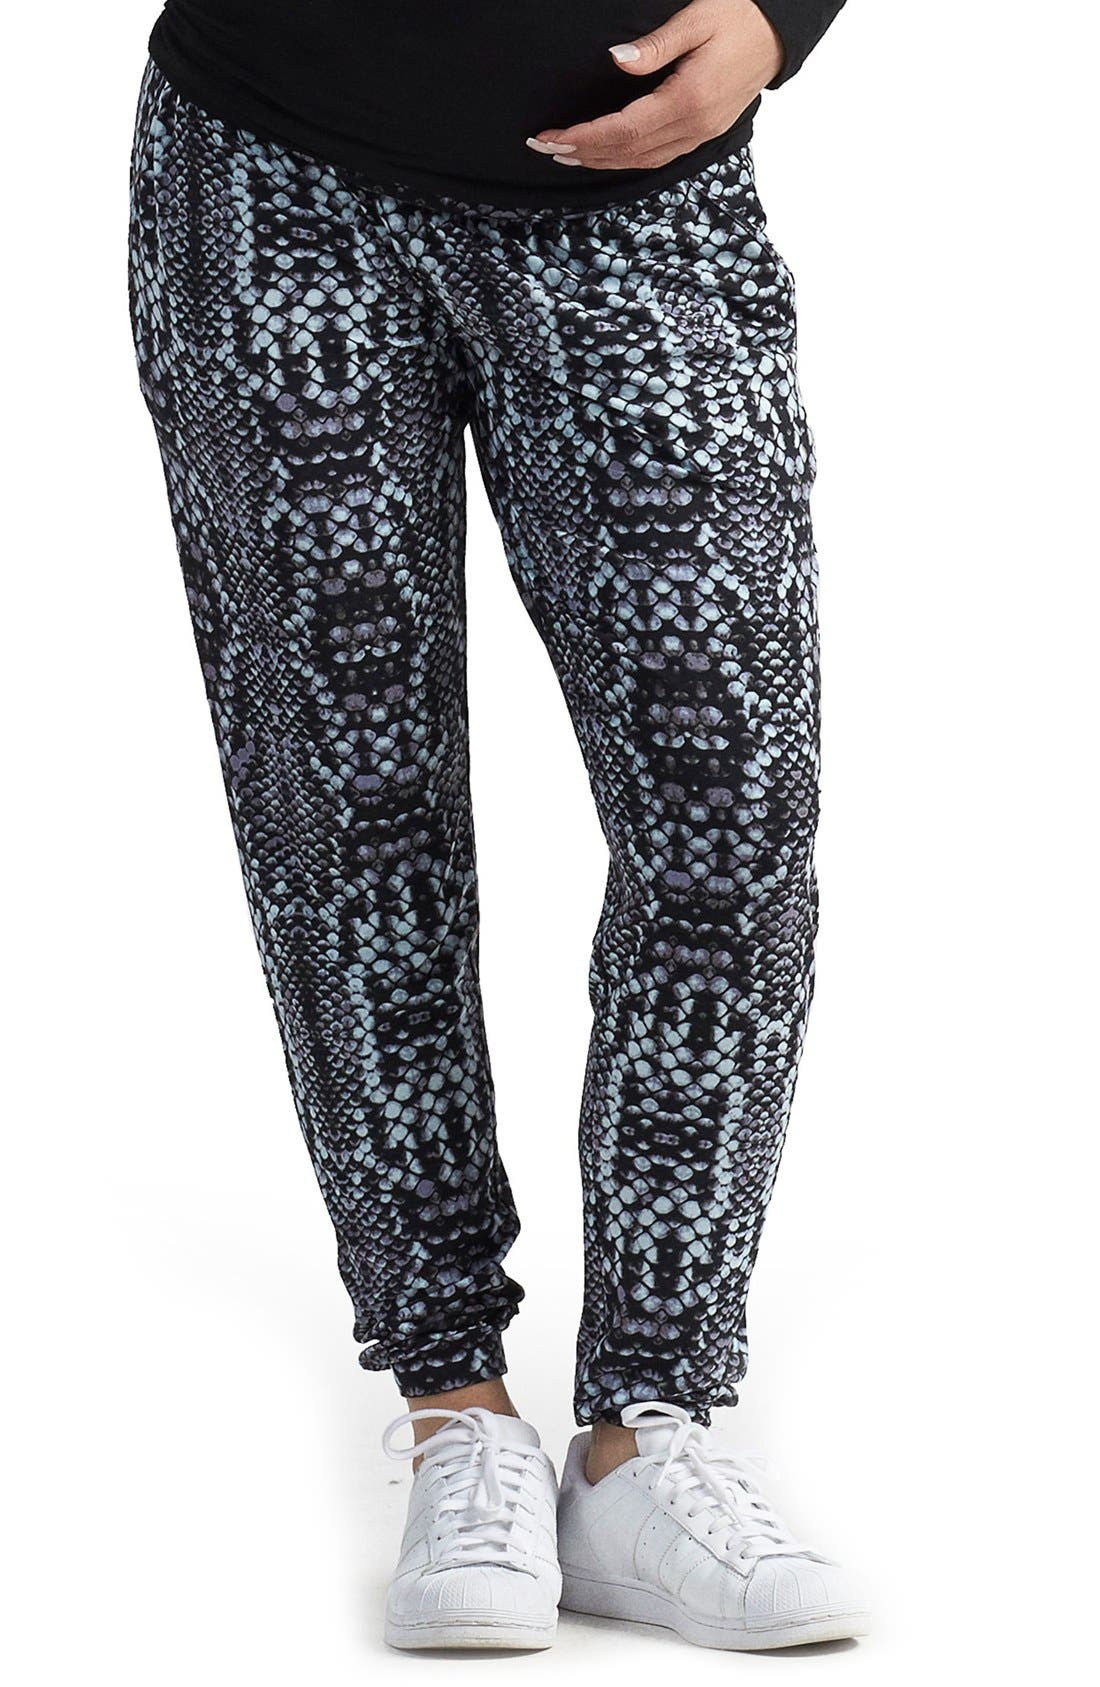 Alternate Image 1 Selected - Tart Maternity 'Liviana' Tapered Maternity Pants